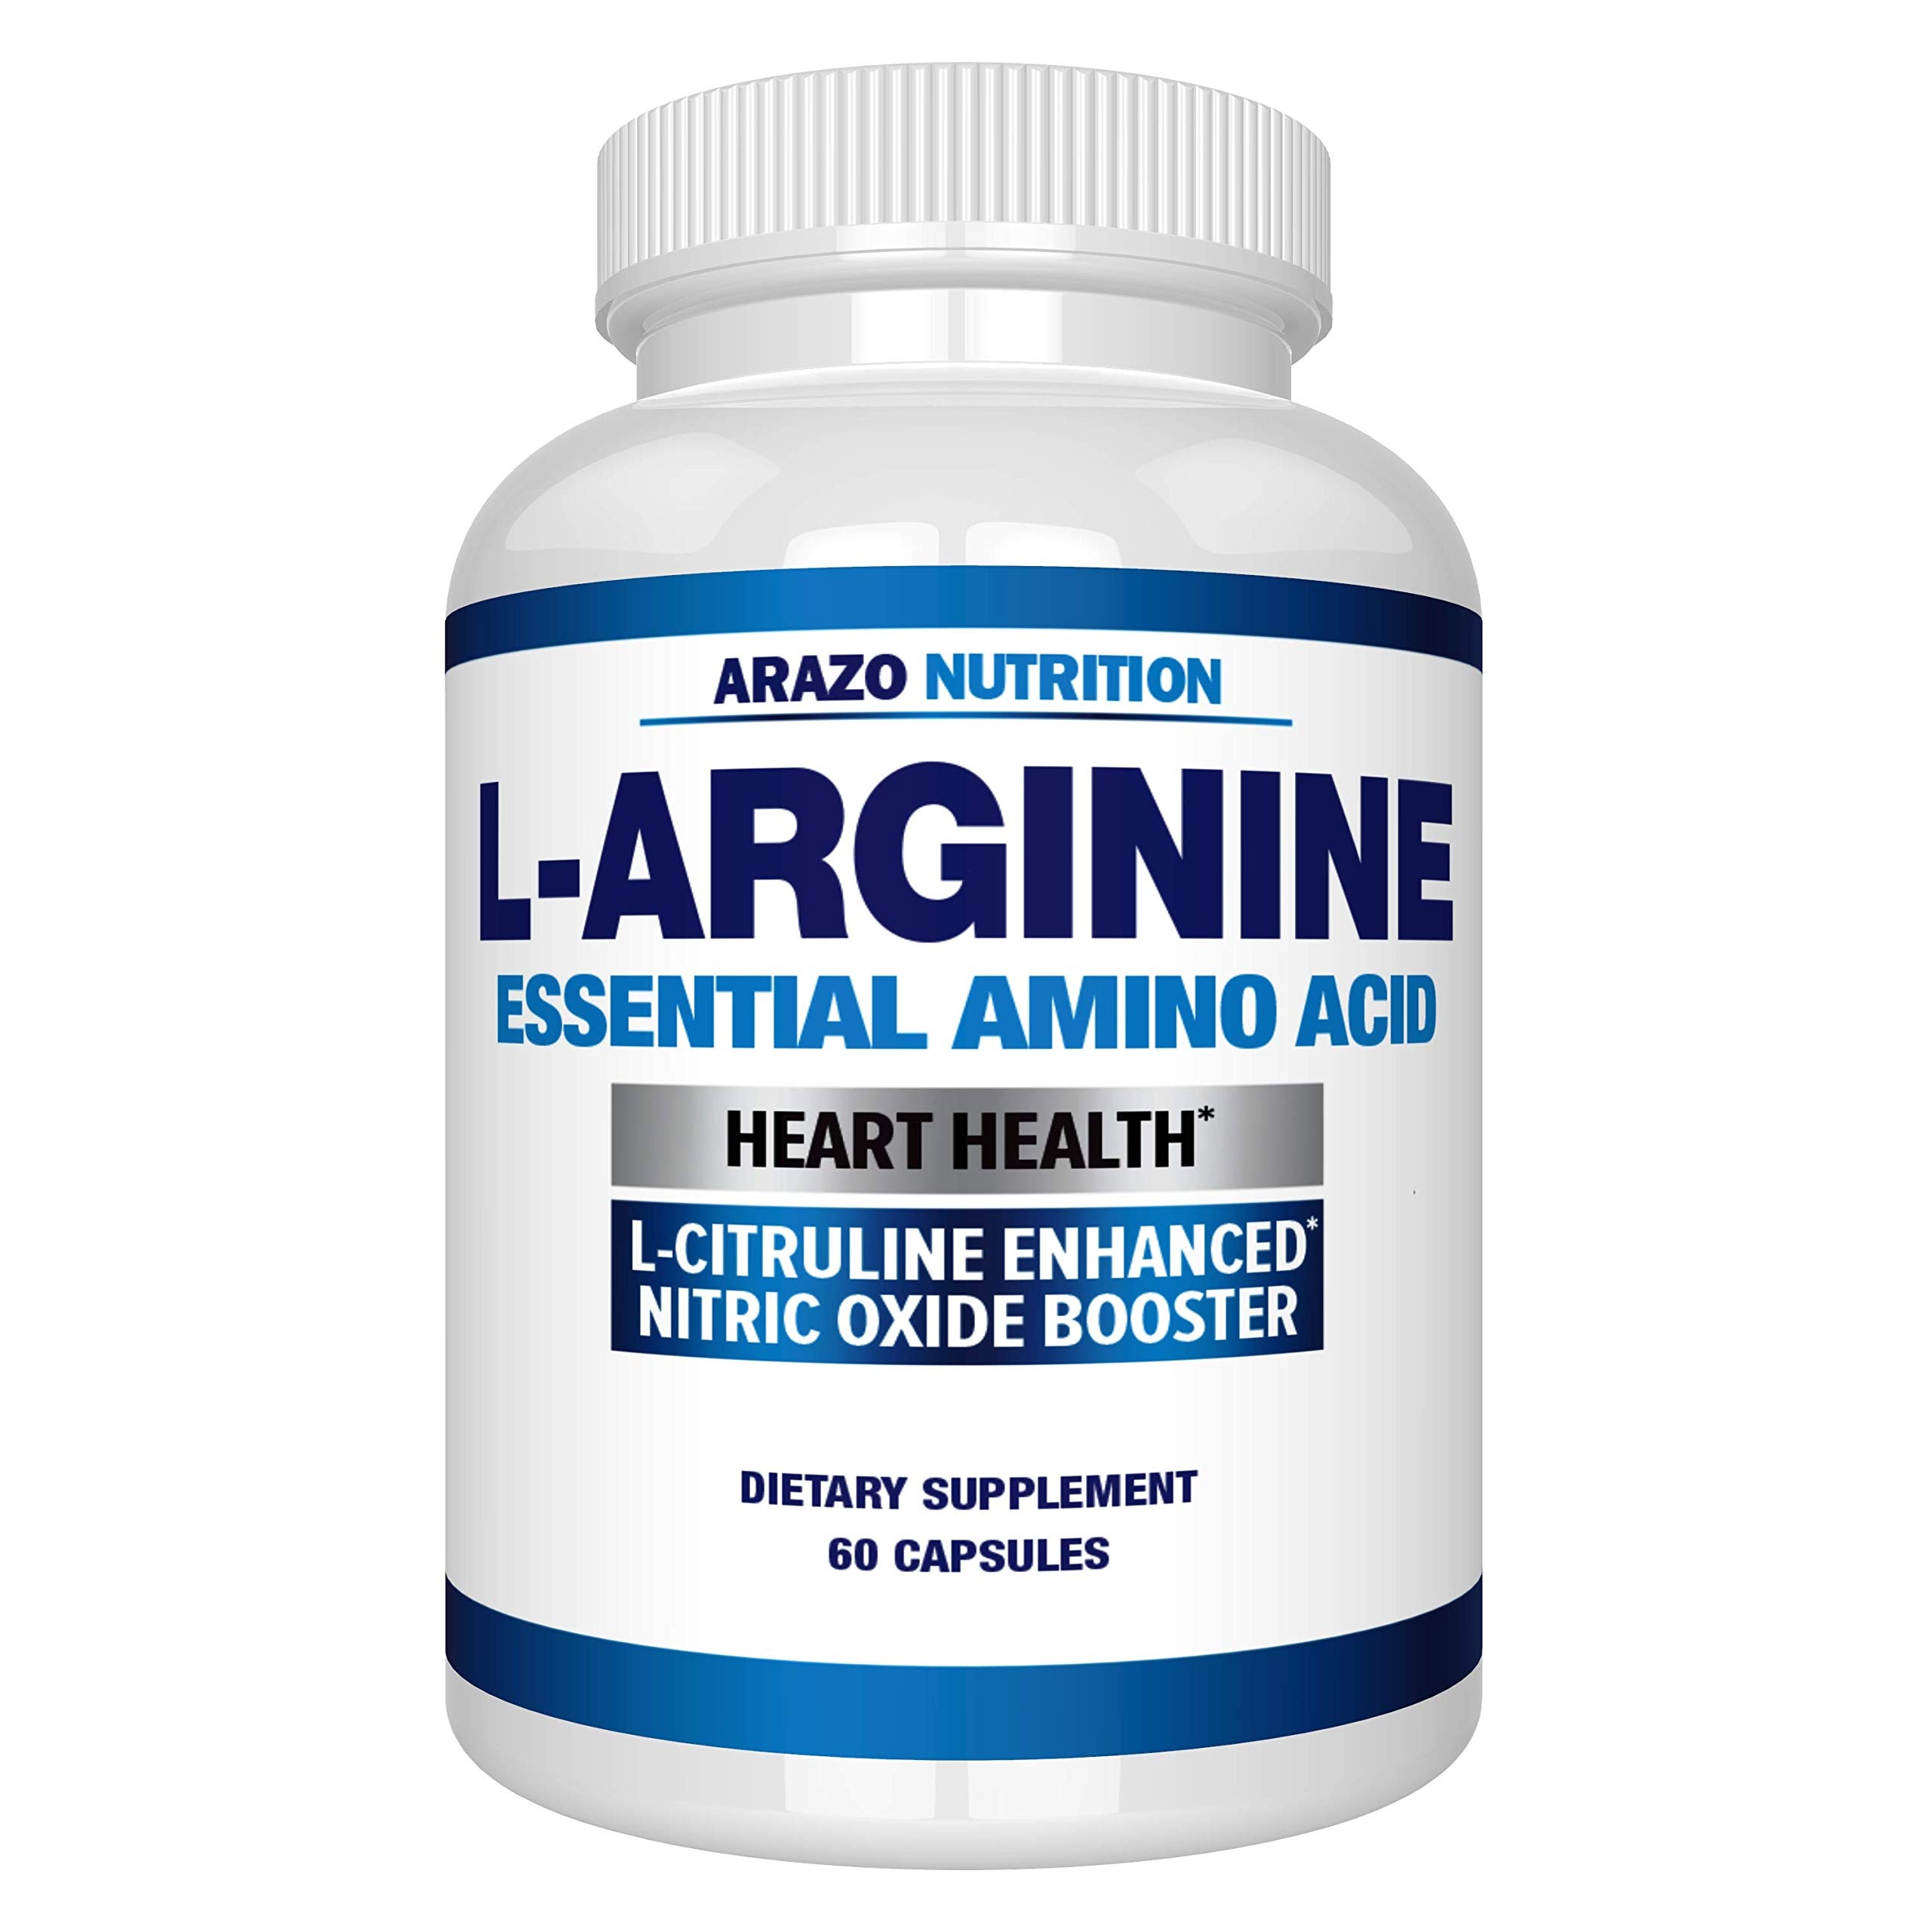 Premium L Arginine - 1340mg Nitric Oxide Booster with L-Citrulline & Essential Amino Acids for Heart and Muscle Gain - Nitric Oxide Boost Supplement for Endurance and Energy - 60 Capsules